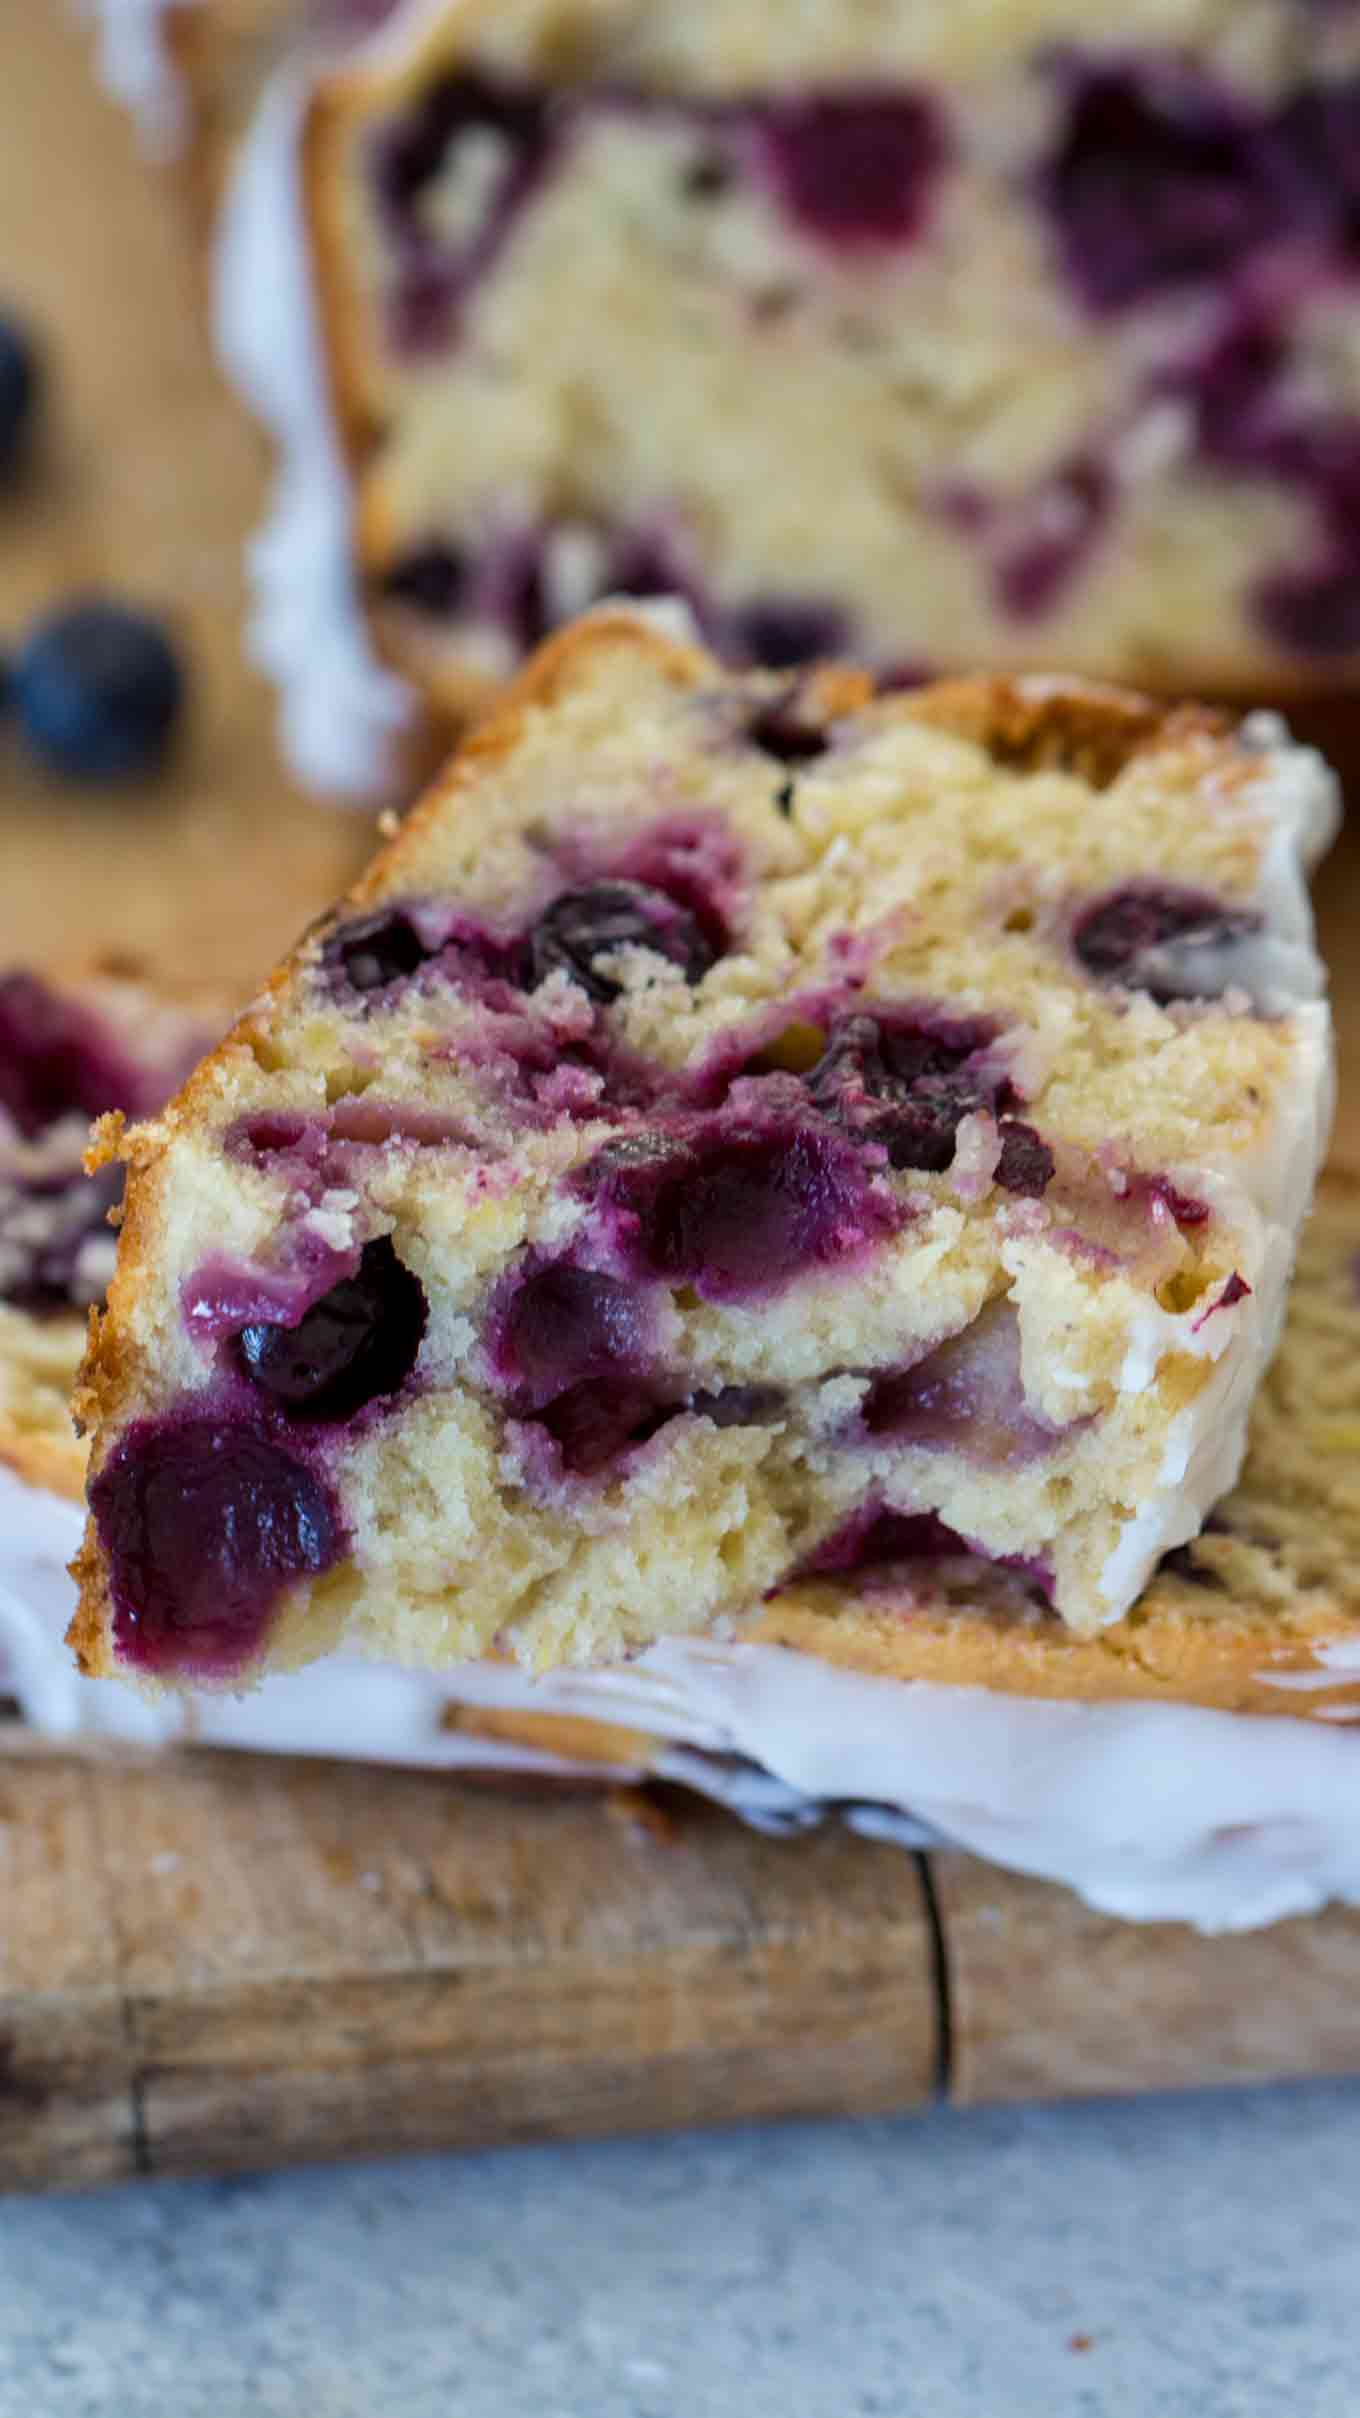 Blueberry Banana Bread Slice